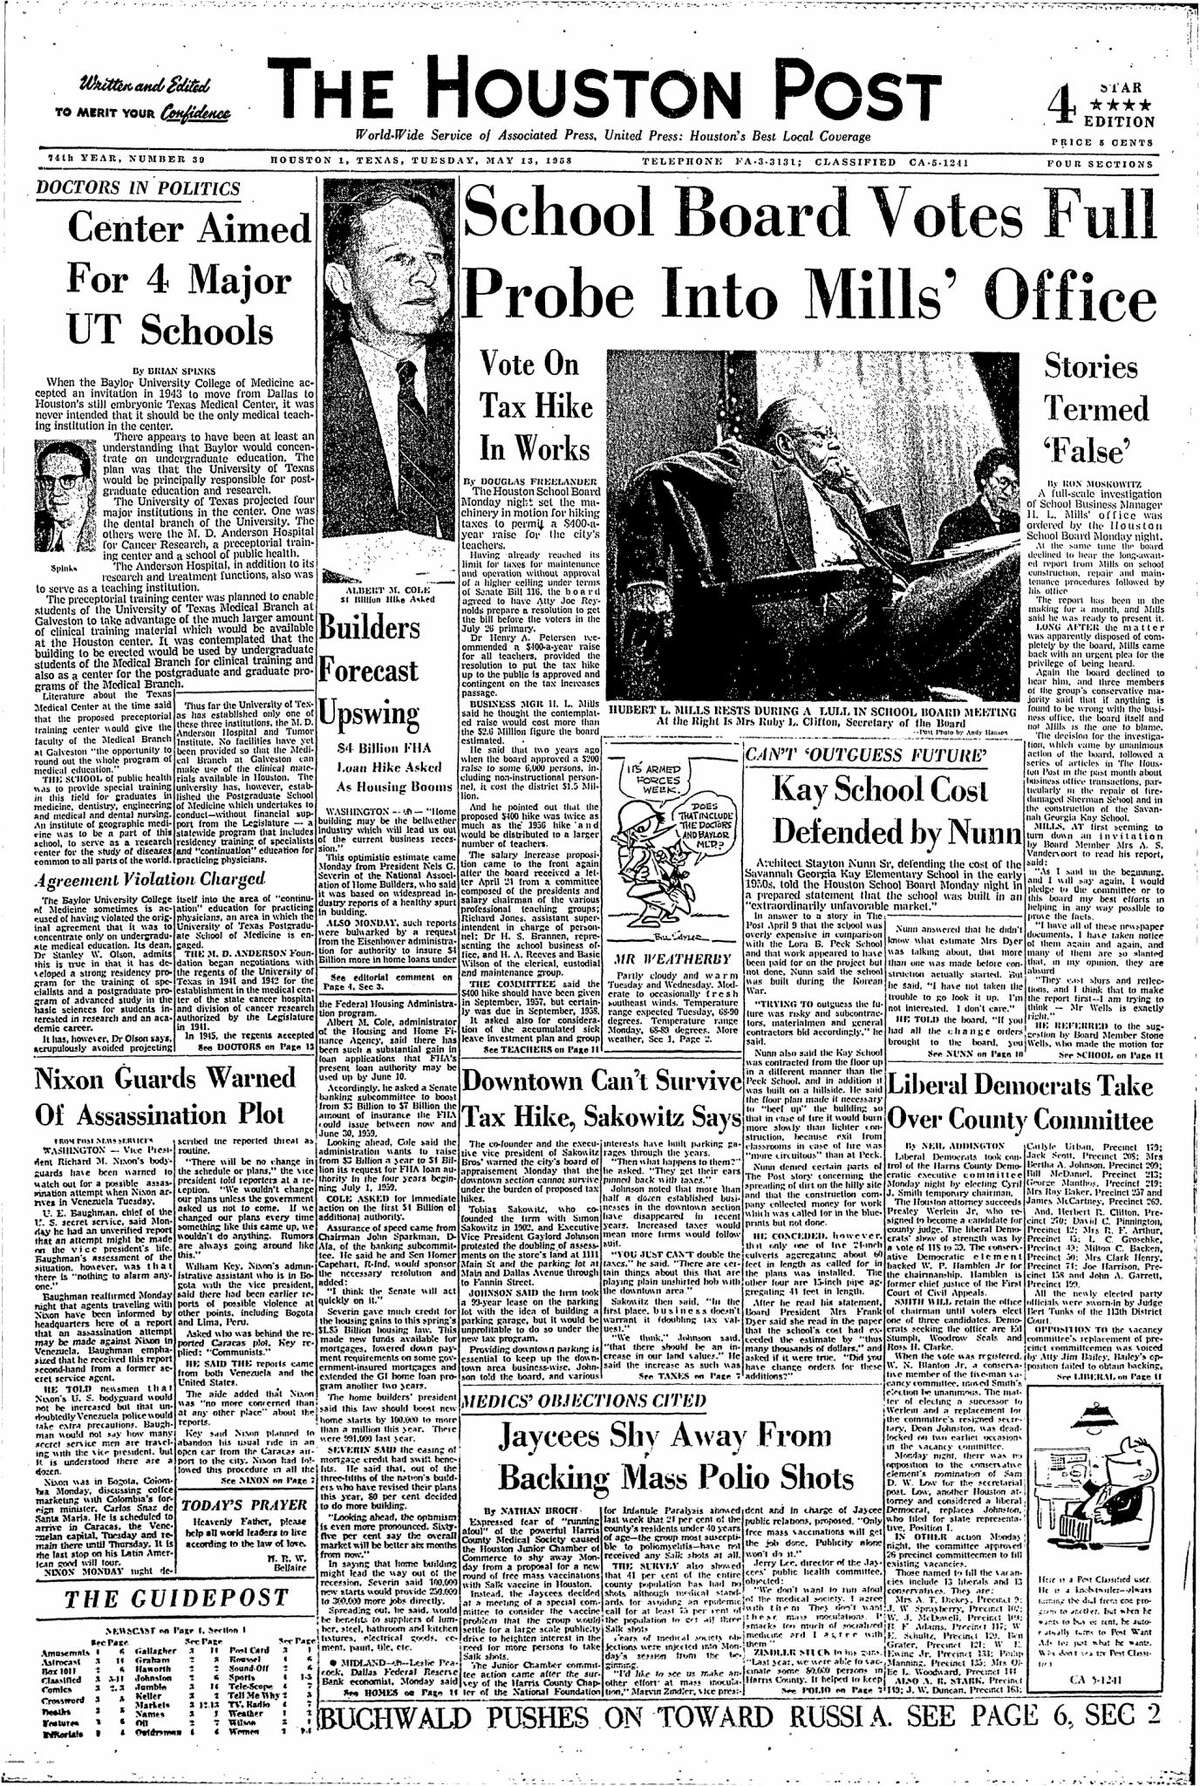 Houston Post front page from May 13, 1958.